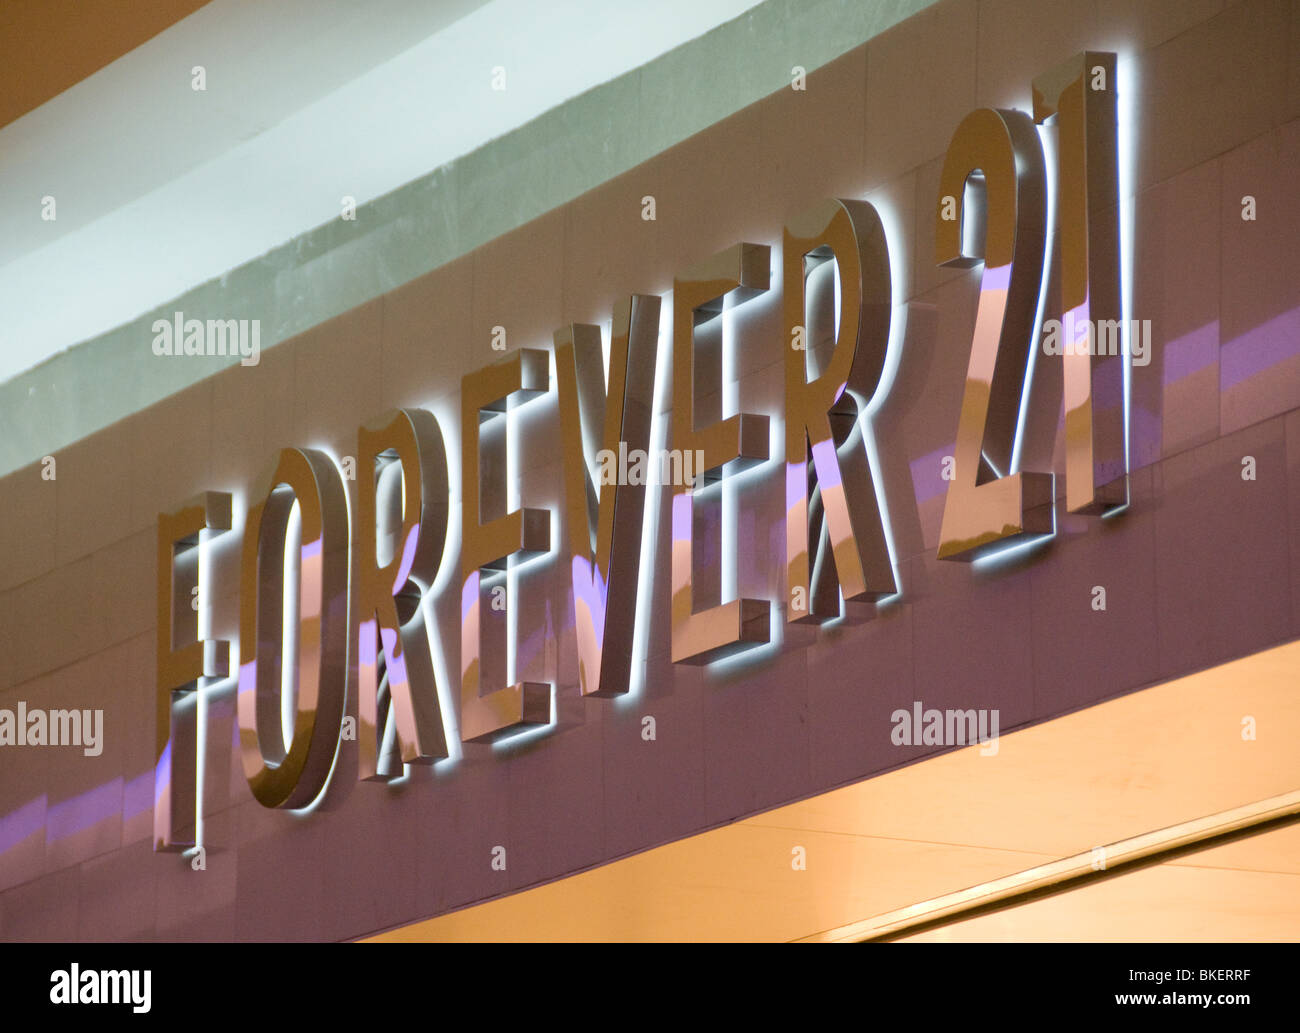 forever 21 stock photo 29214851 alamy